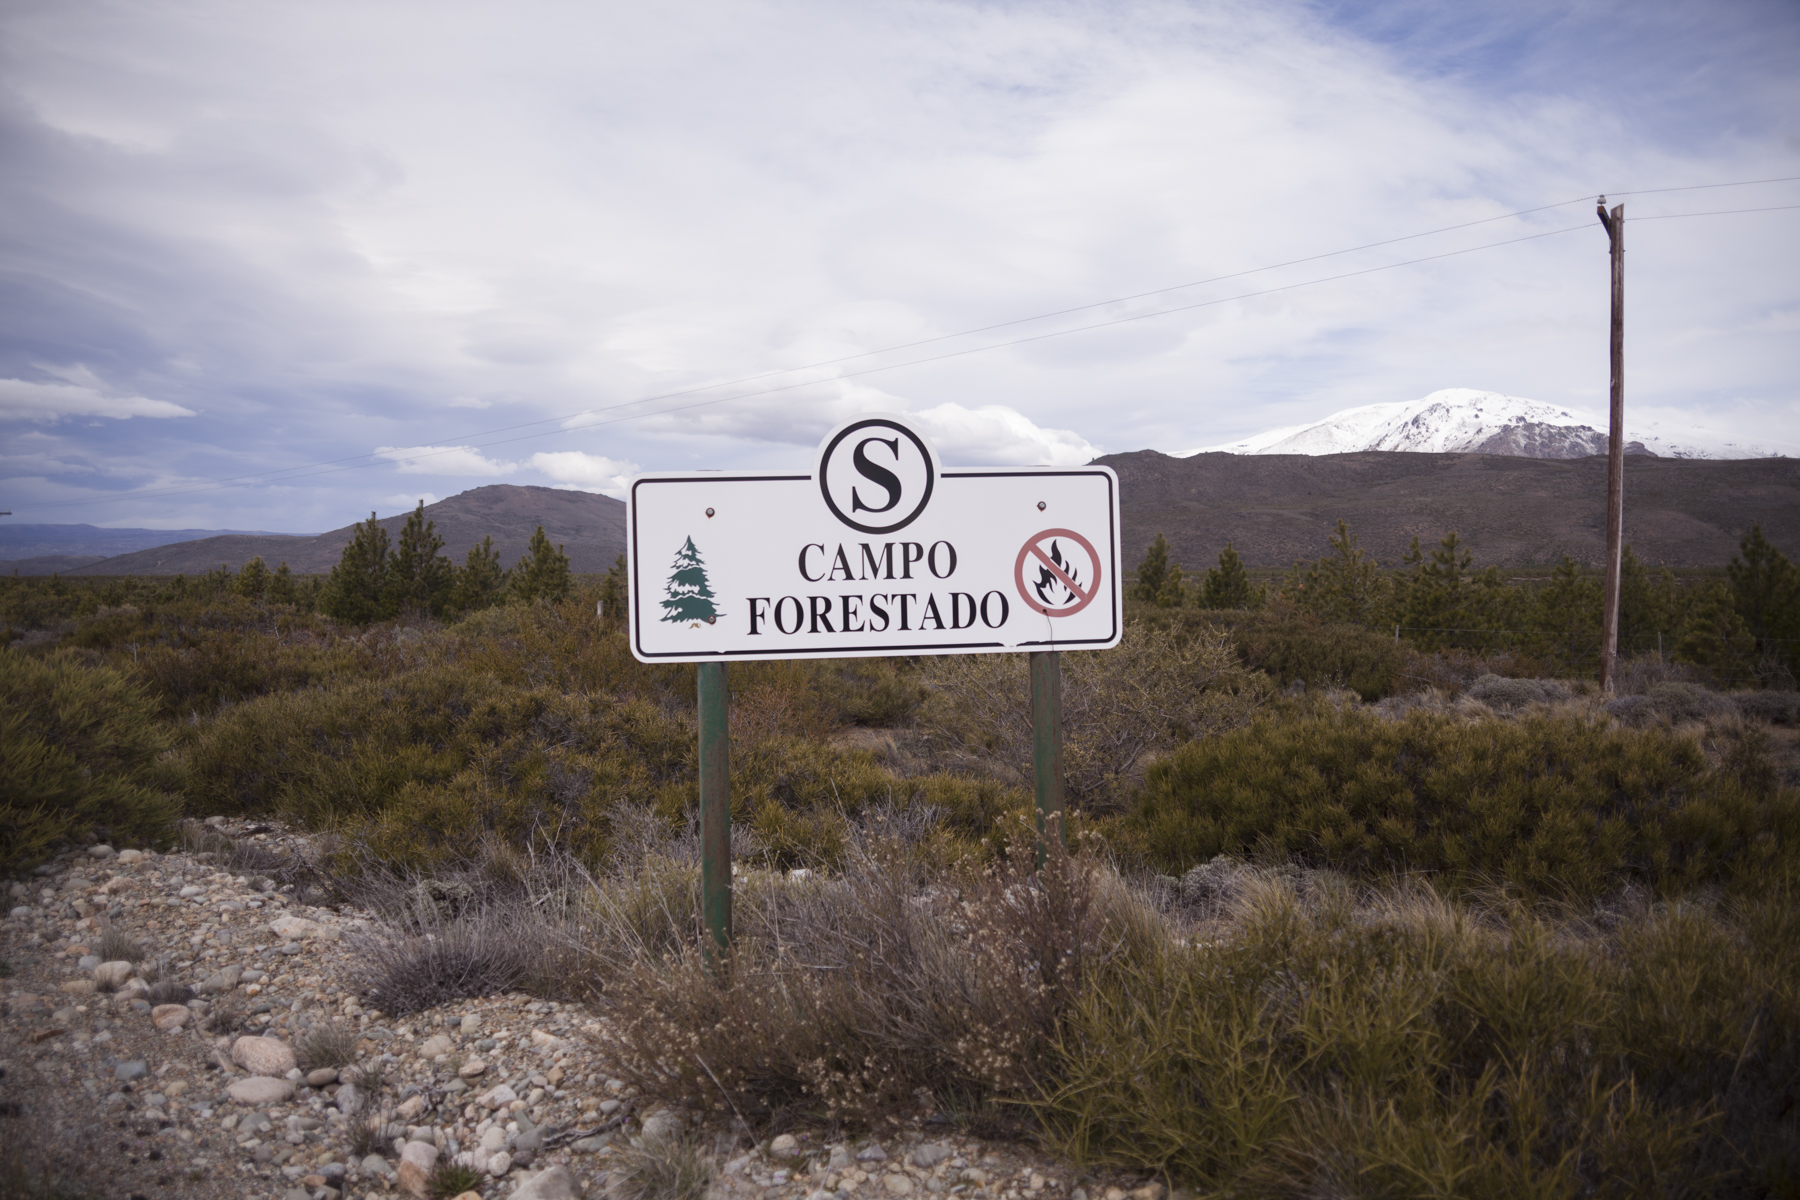 One of the main businesses of the Italian businessman is the afforestation of an immense portion of Patagonia with subsidies from the State (Pablo Linietsky)